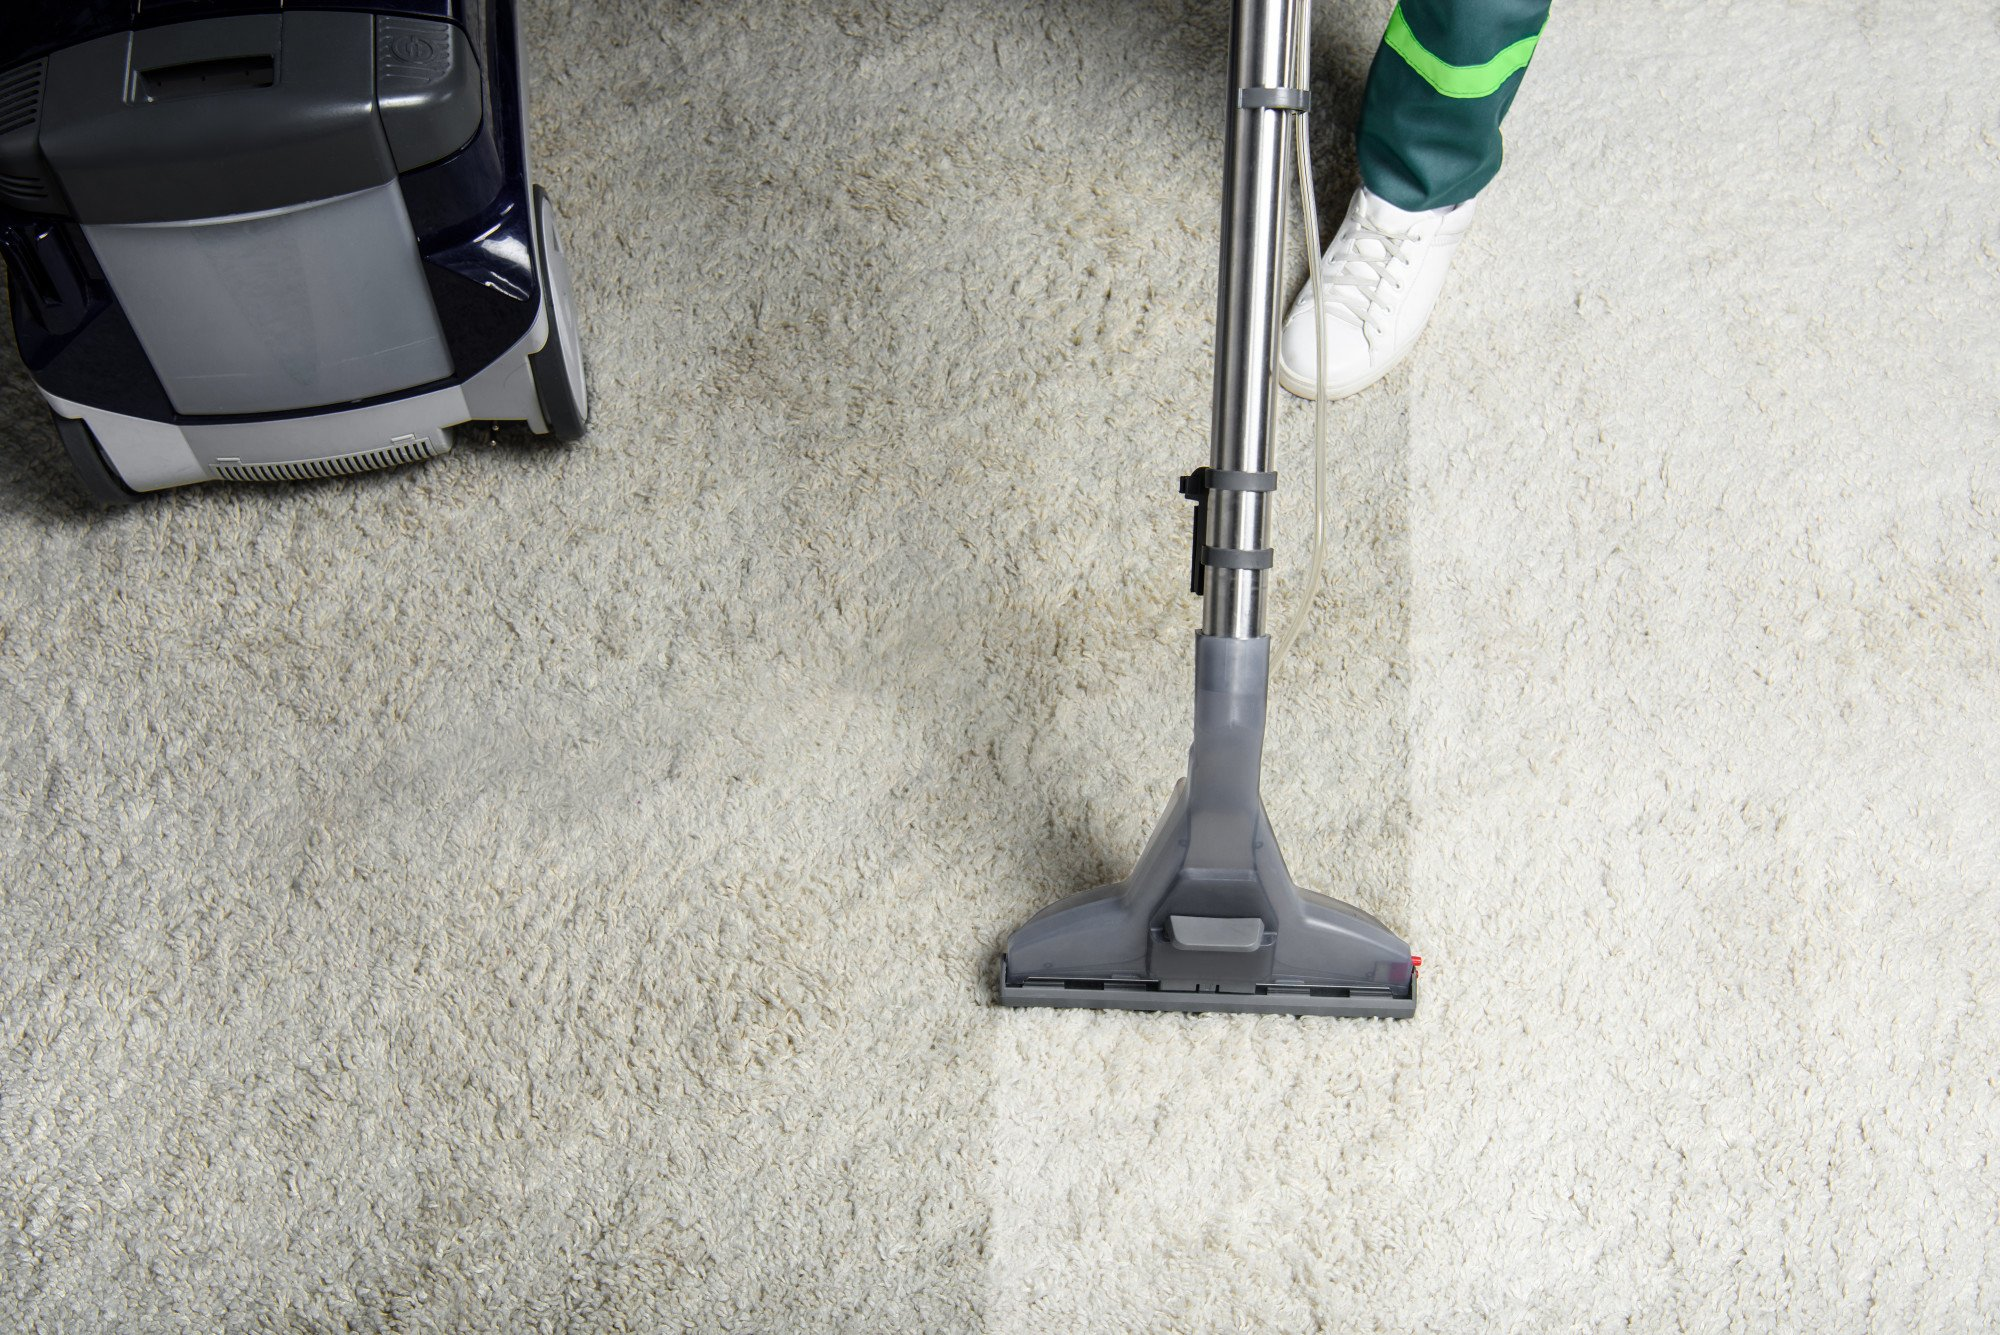 Top 5 Factors to Consider When Hiring Carpet Cleaning Companies